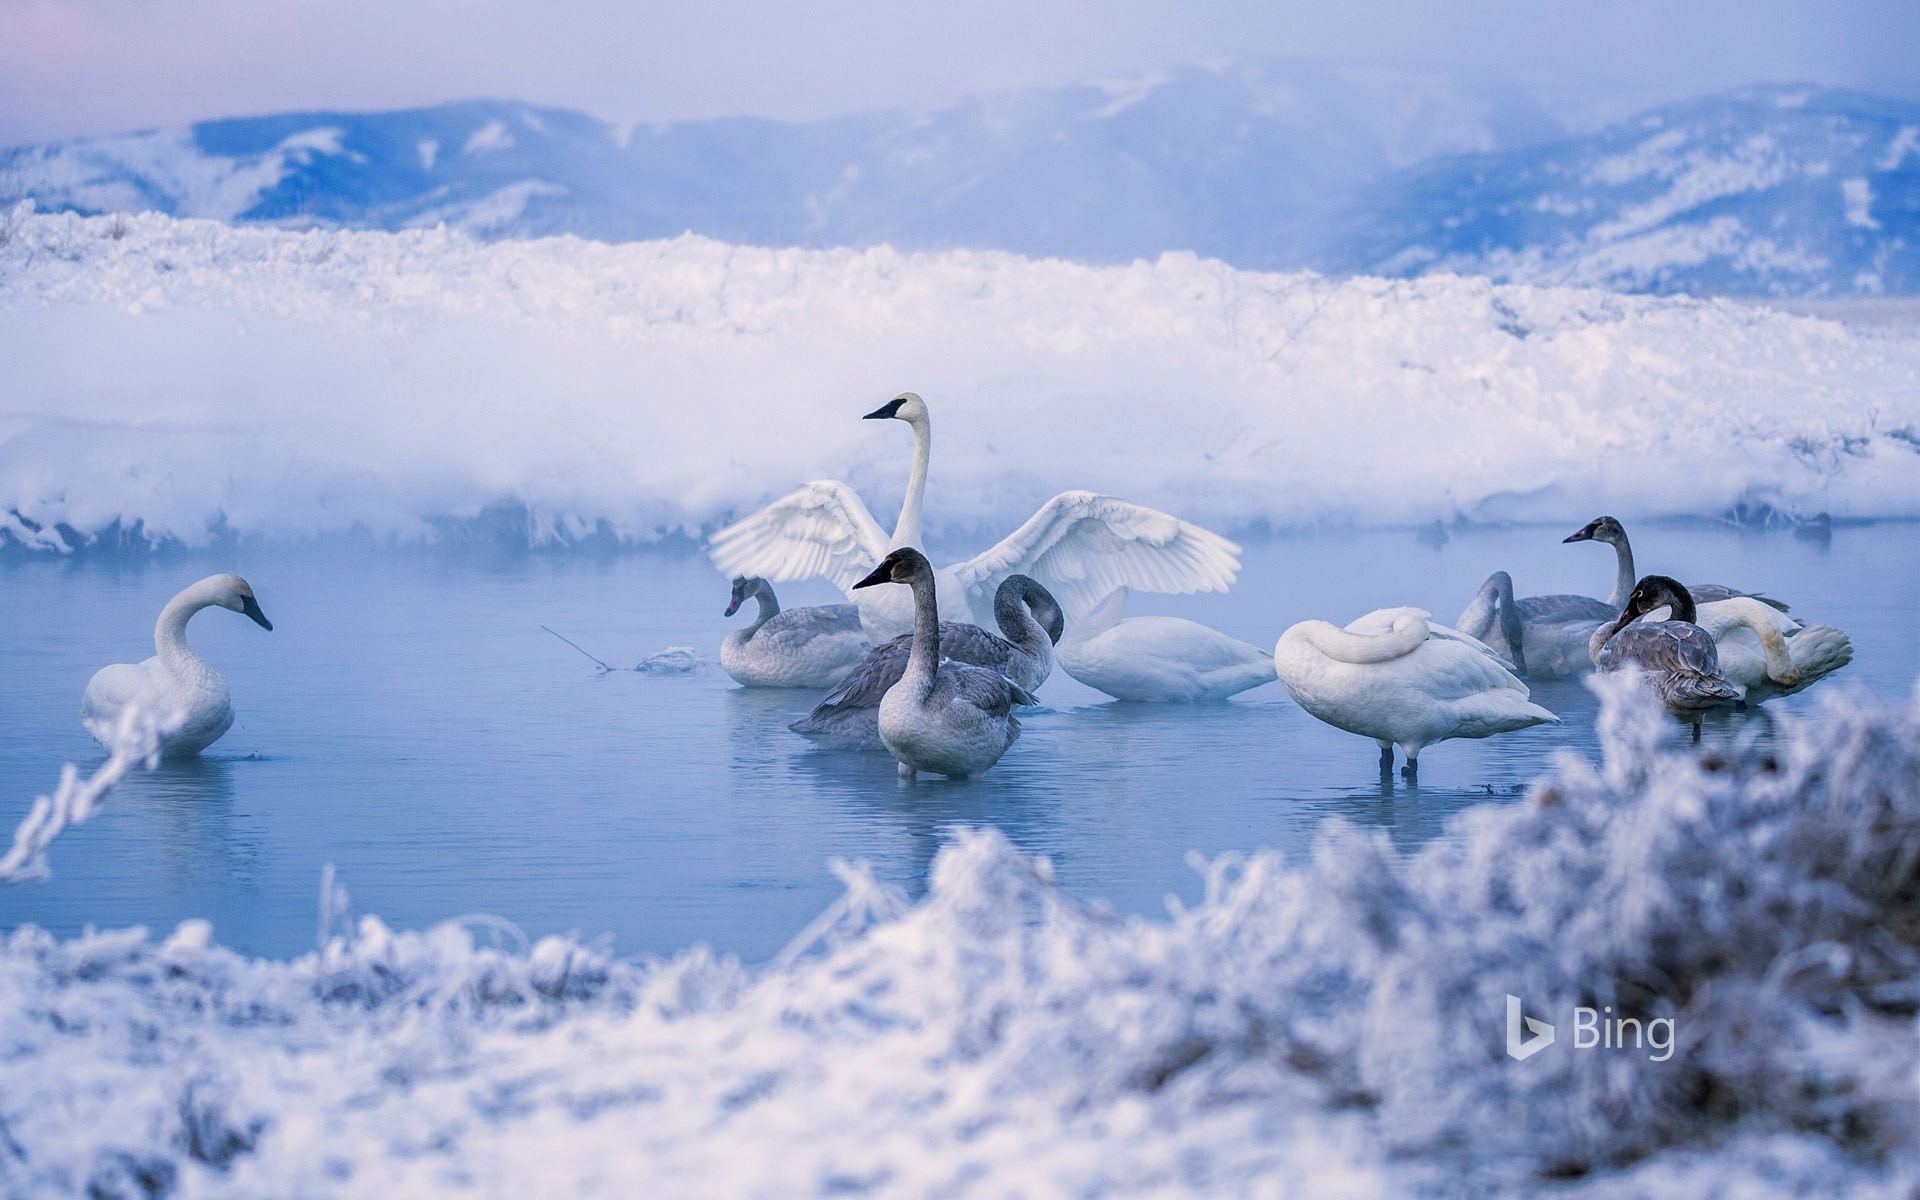 Trumpeter swans at Kelly Warm Springs, near Kelly, Wyoming